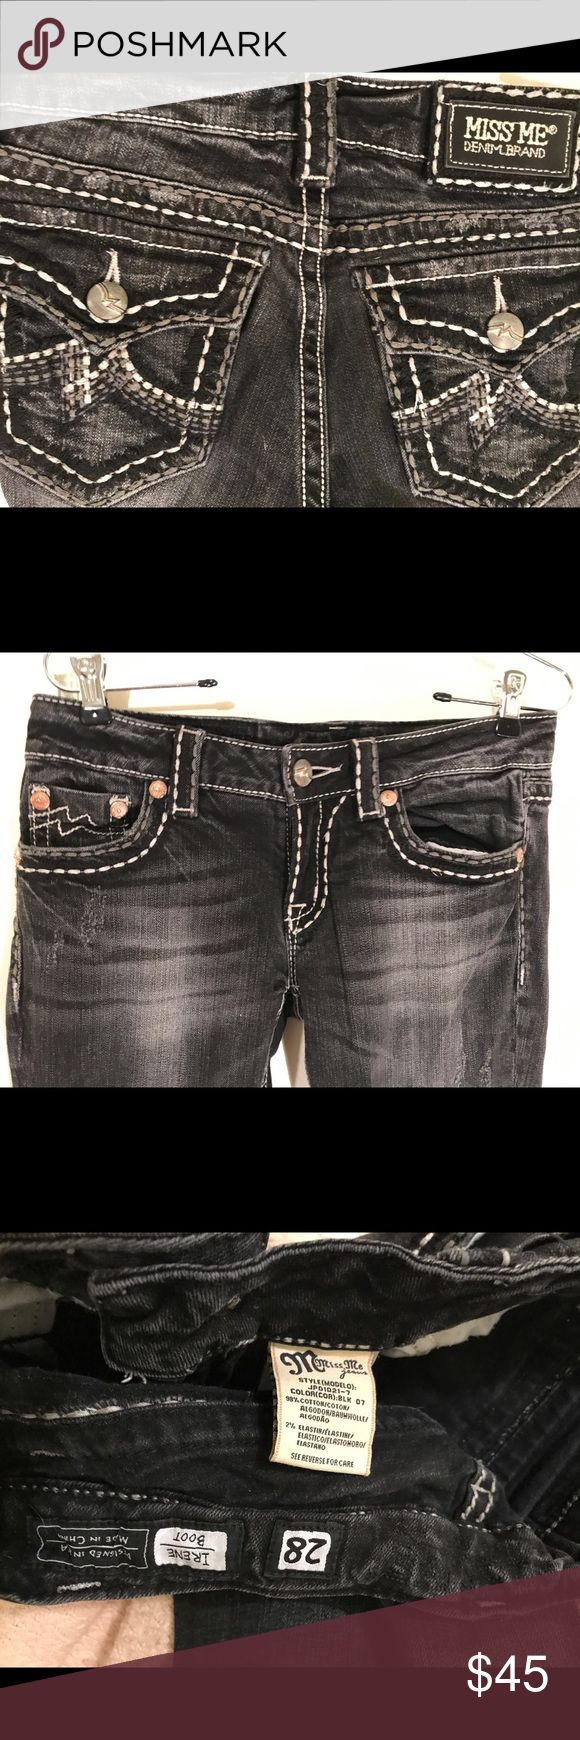 Miss Me boot cut jeans Miss Me boot cut jeans Miss Me Jeans Boot Cut